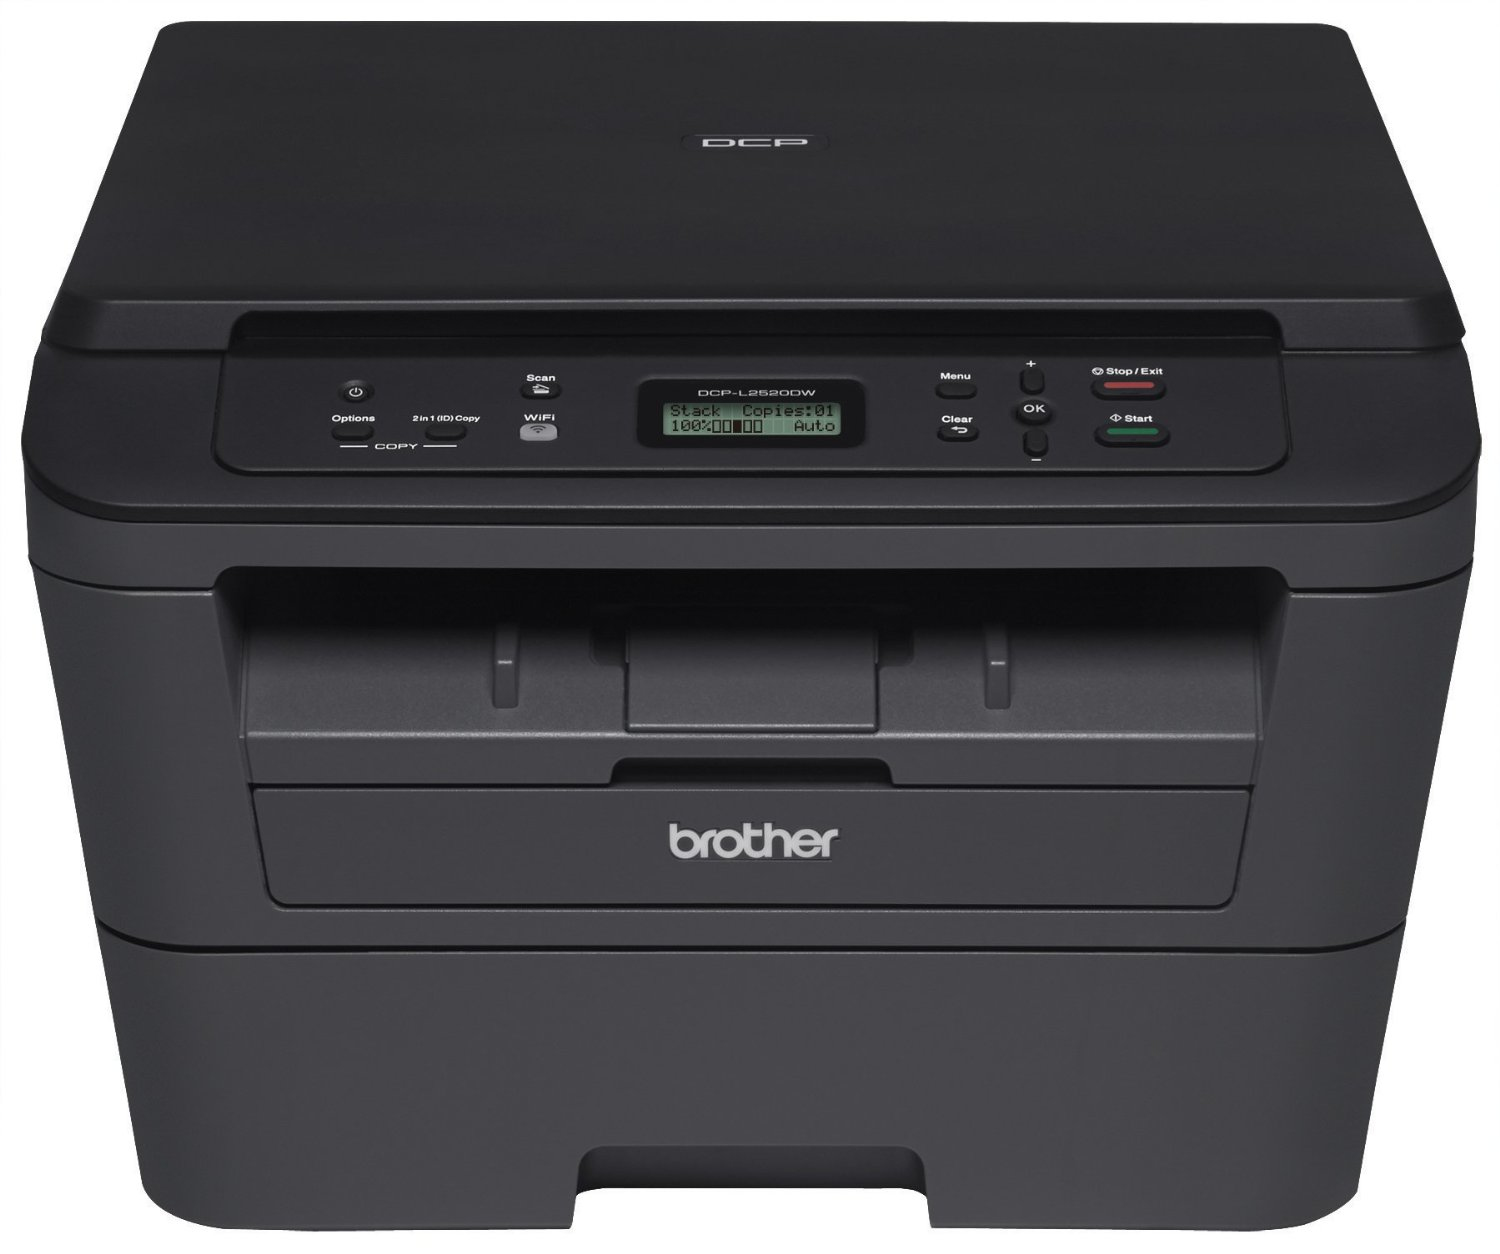 Brother DCP-L2520DW 2400 x 600DPI Laser A4 26ppm Wi-Fi multifunctional